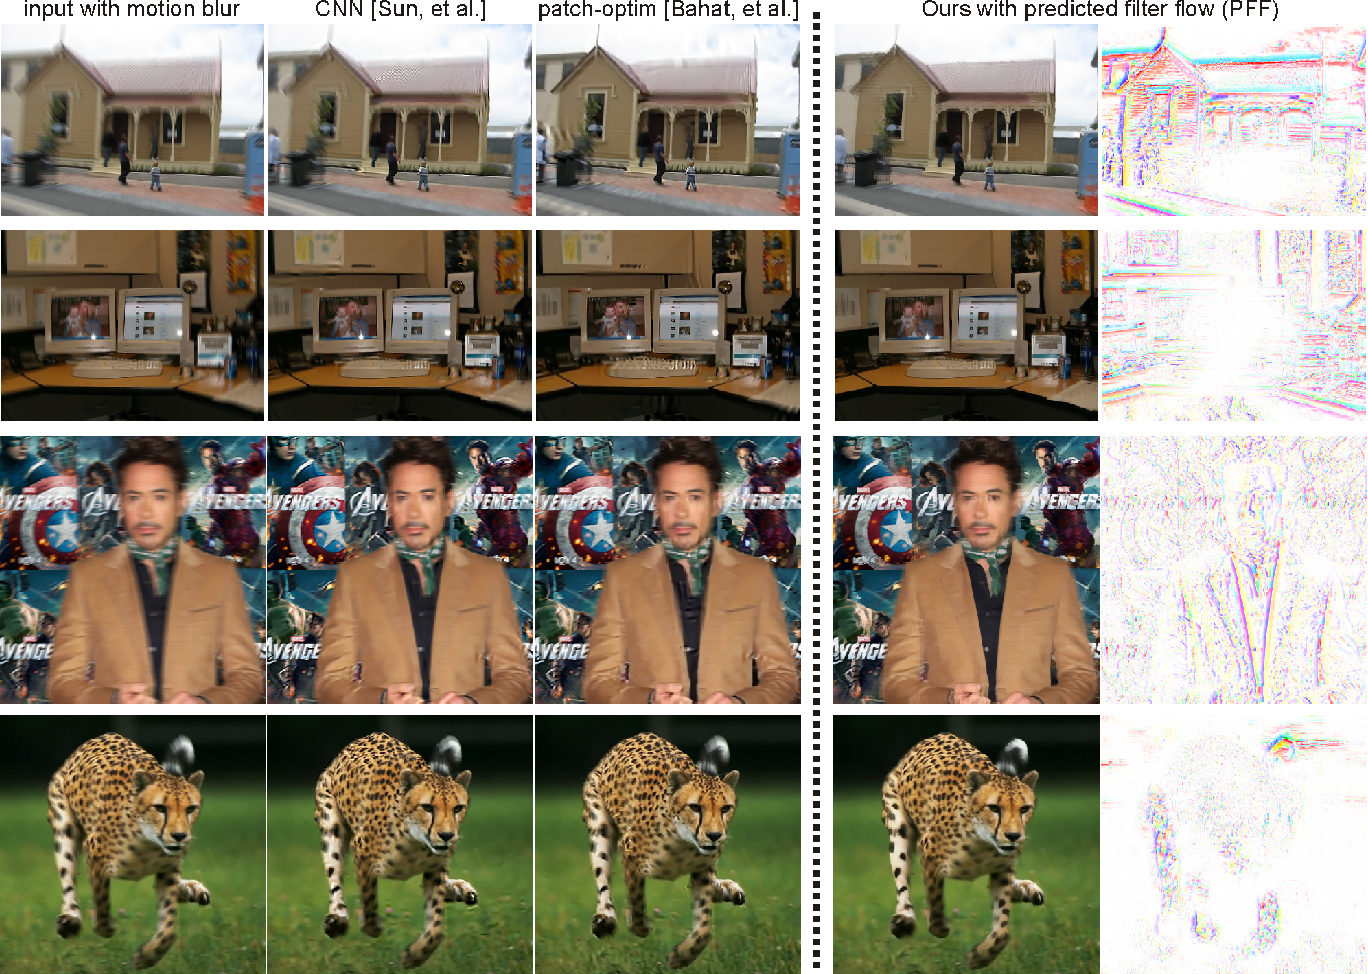 Figure 3 for Image Reconstruction with Predictive Filter Flow